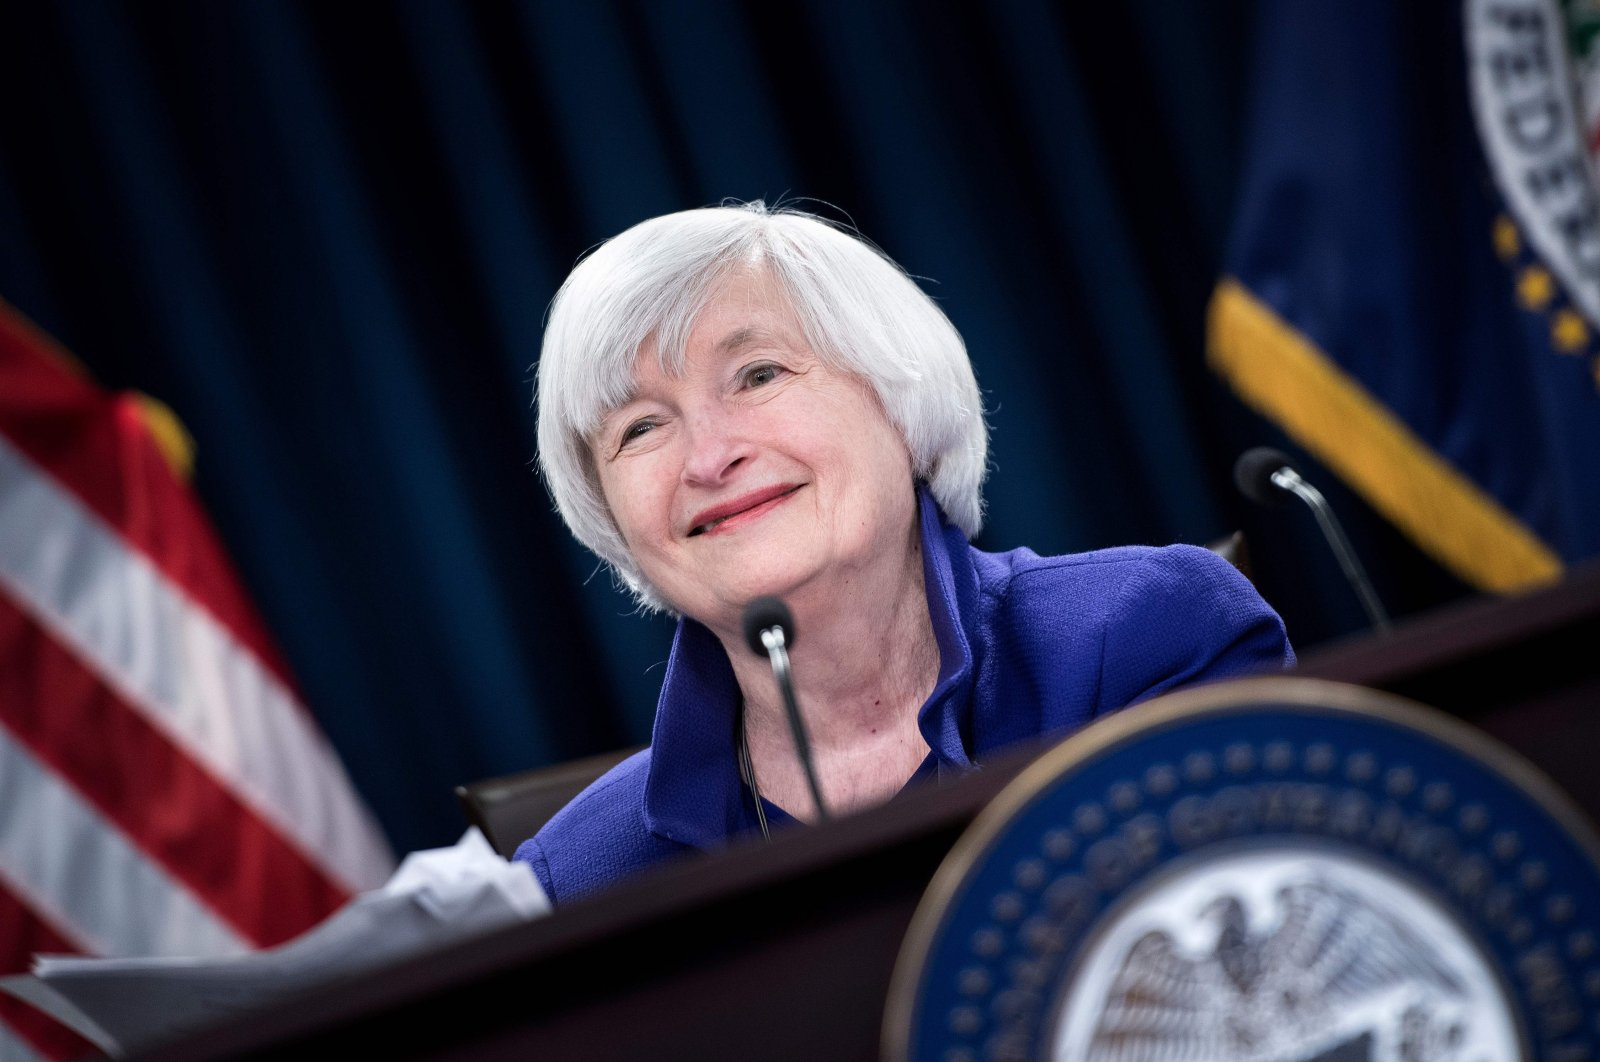 In this file photo taken on Dec. 13, 2017, former Federal Reserve Board Chair Janet Yellen speaks during a briefing at the U.S. Federal Reserve in Washington, DC. (AFP Photo)